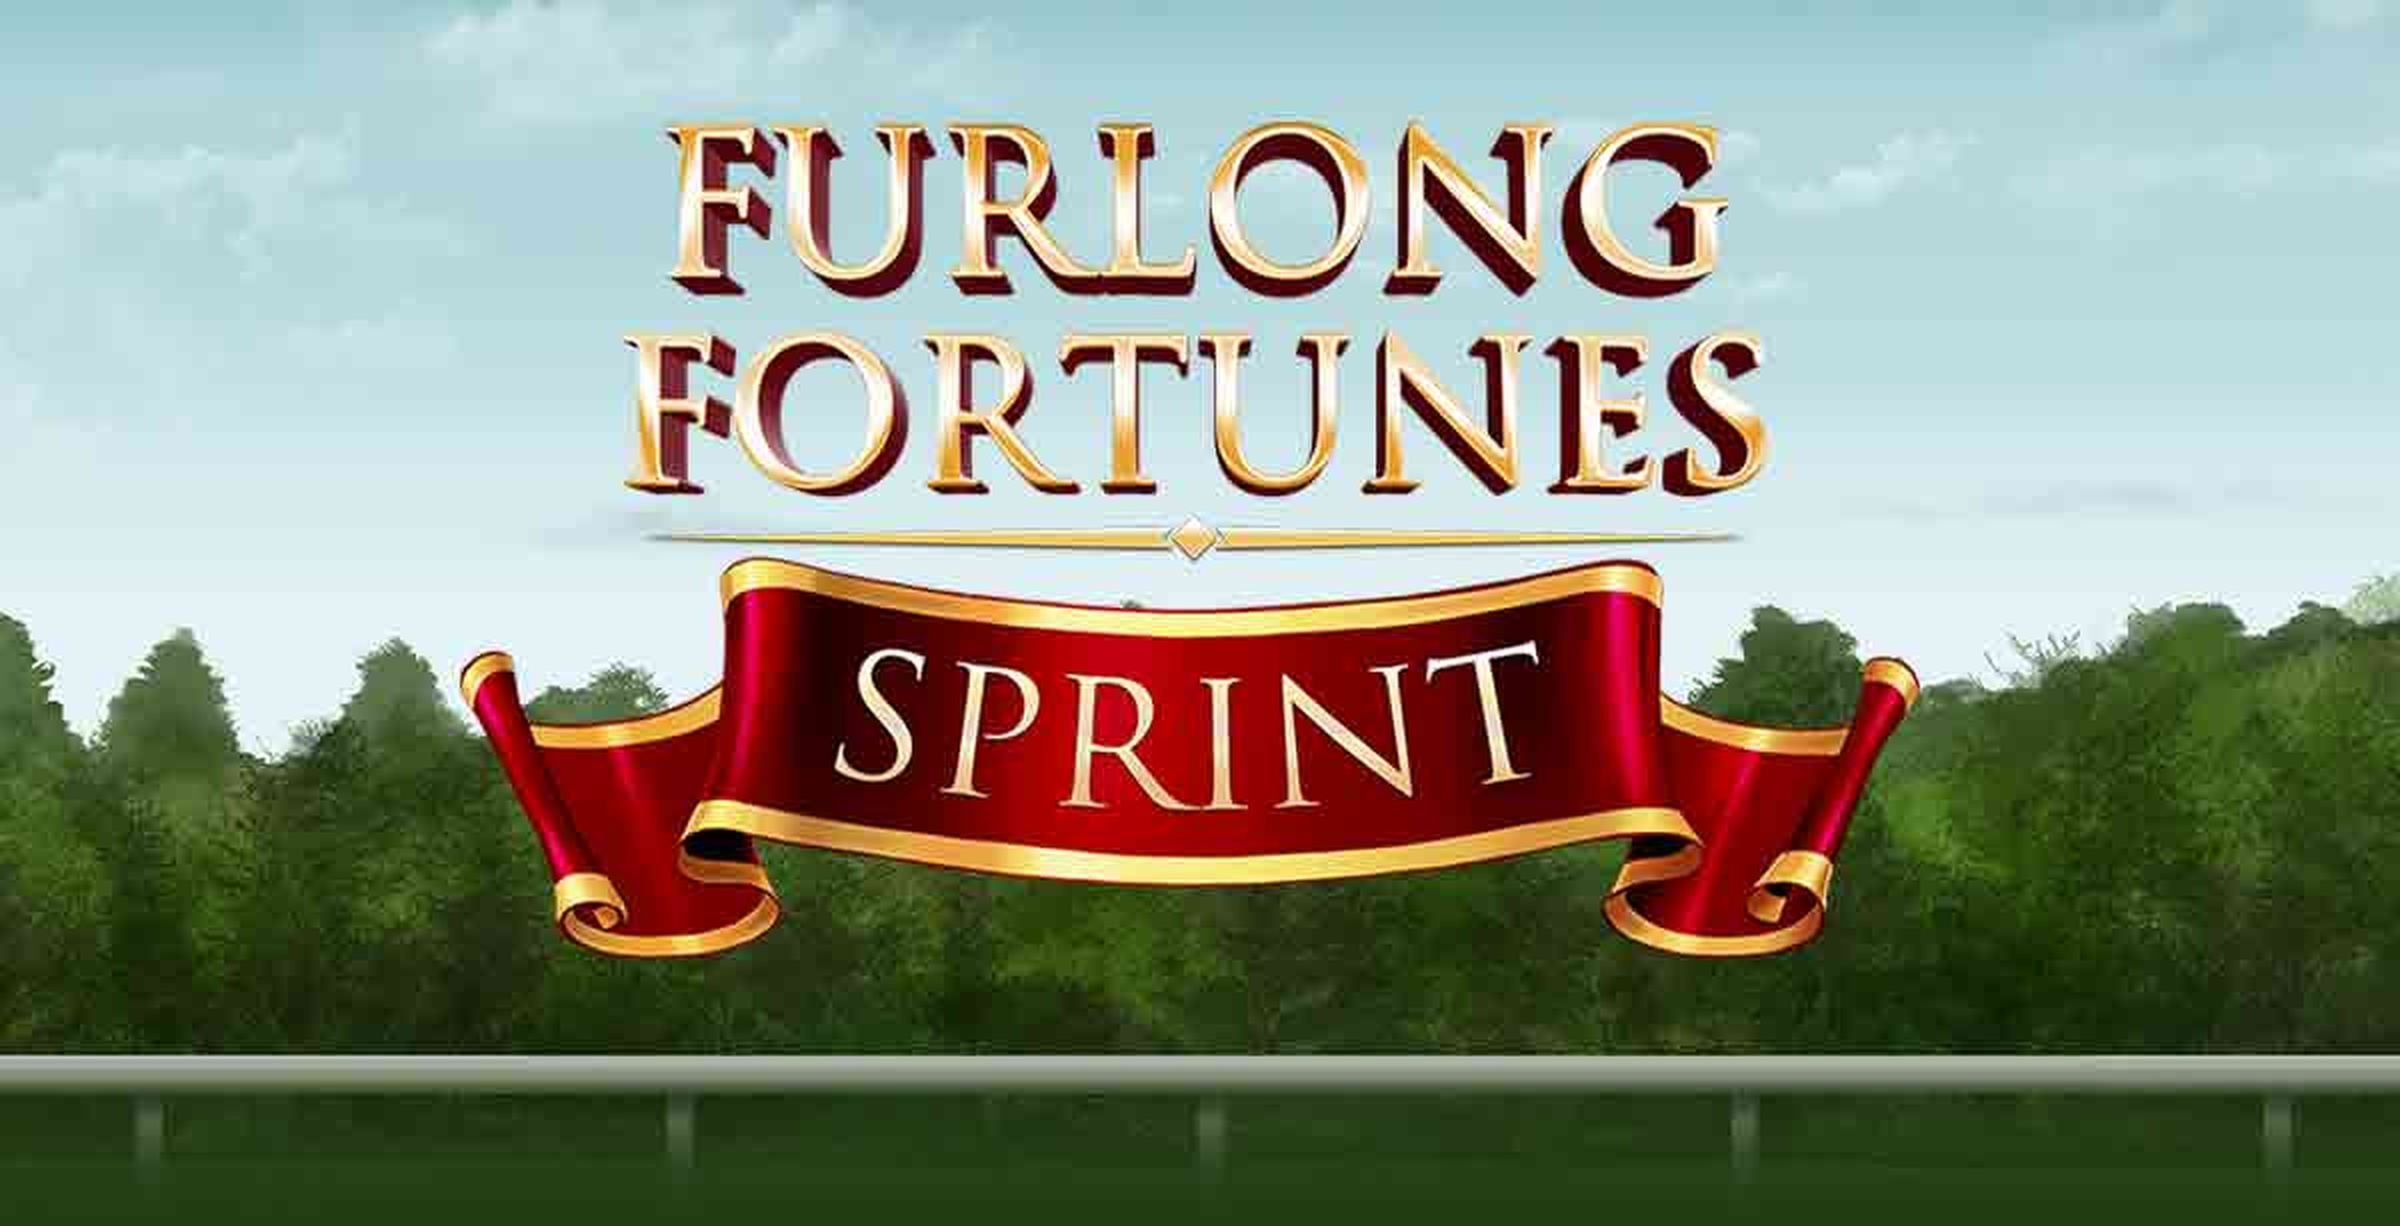 The Furlong Fortunes Sprint Online Slot Demo Game by Inspired Gaming